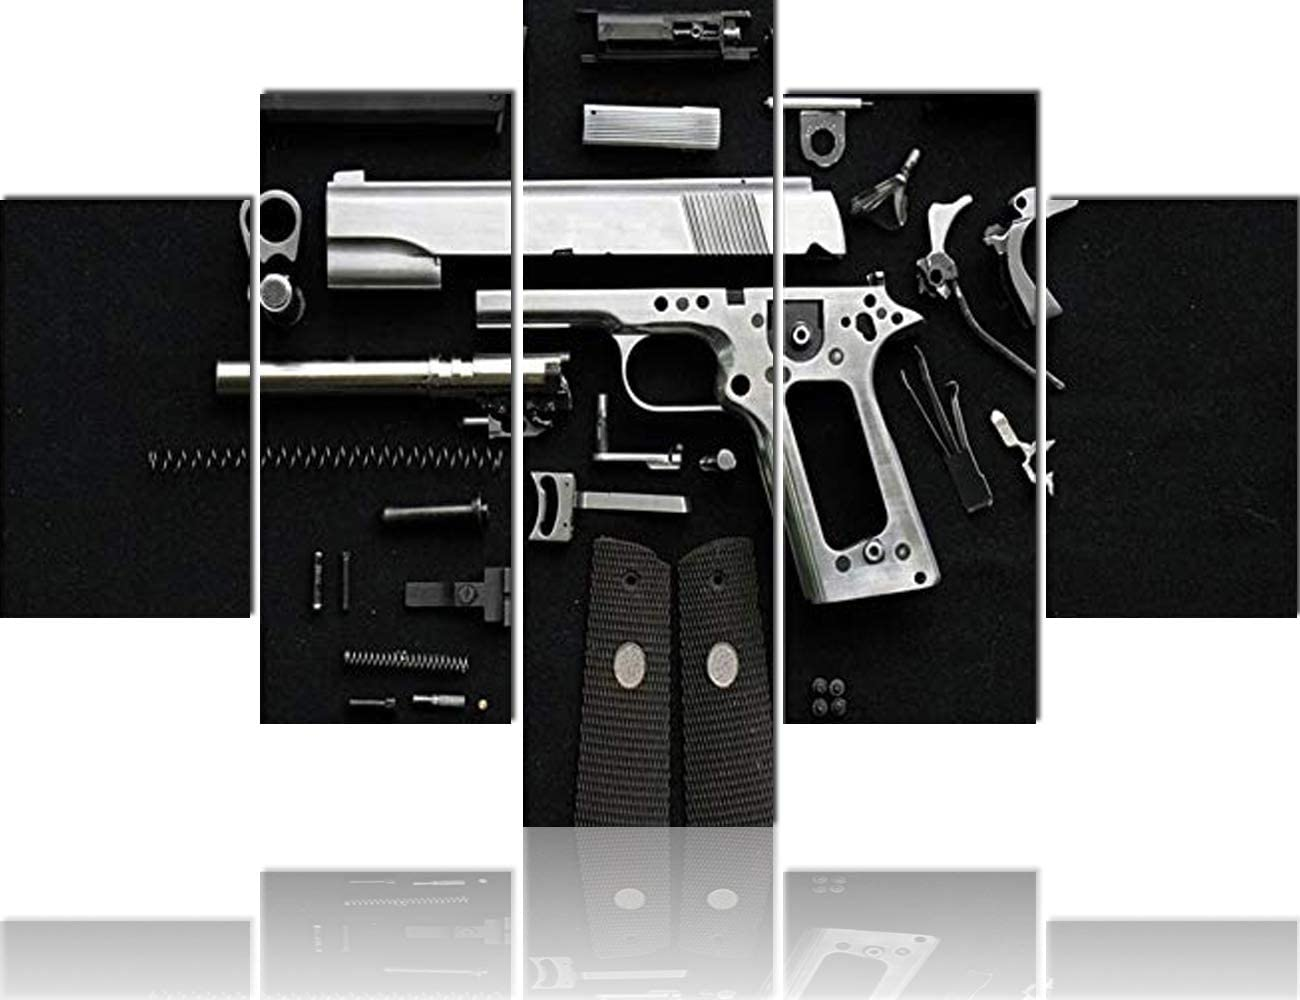 Amazon Com Home Decor In Black And White Extra Big Wall Pictures For Living Room Gun Accessories Canvas Art Military Painting Handgun 5 Piece Artwork Modern Giclee Stretched Ready To Hang 60 Wx40 H Posters